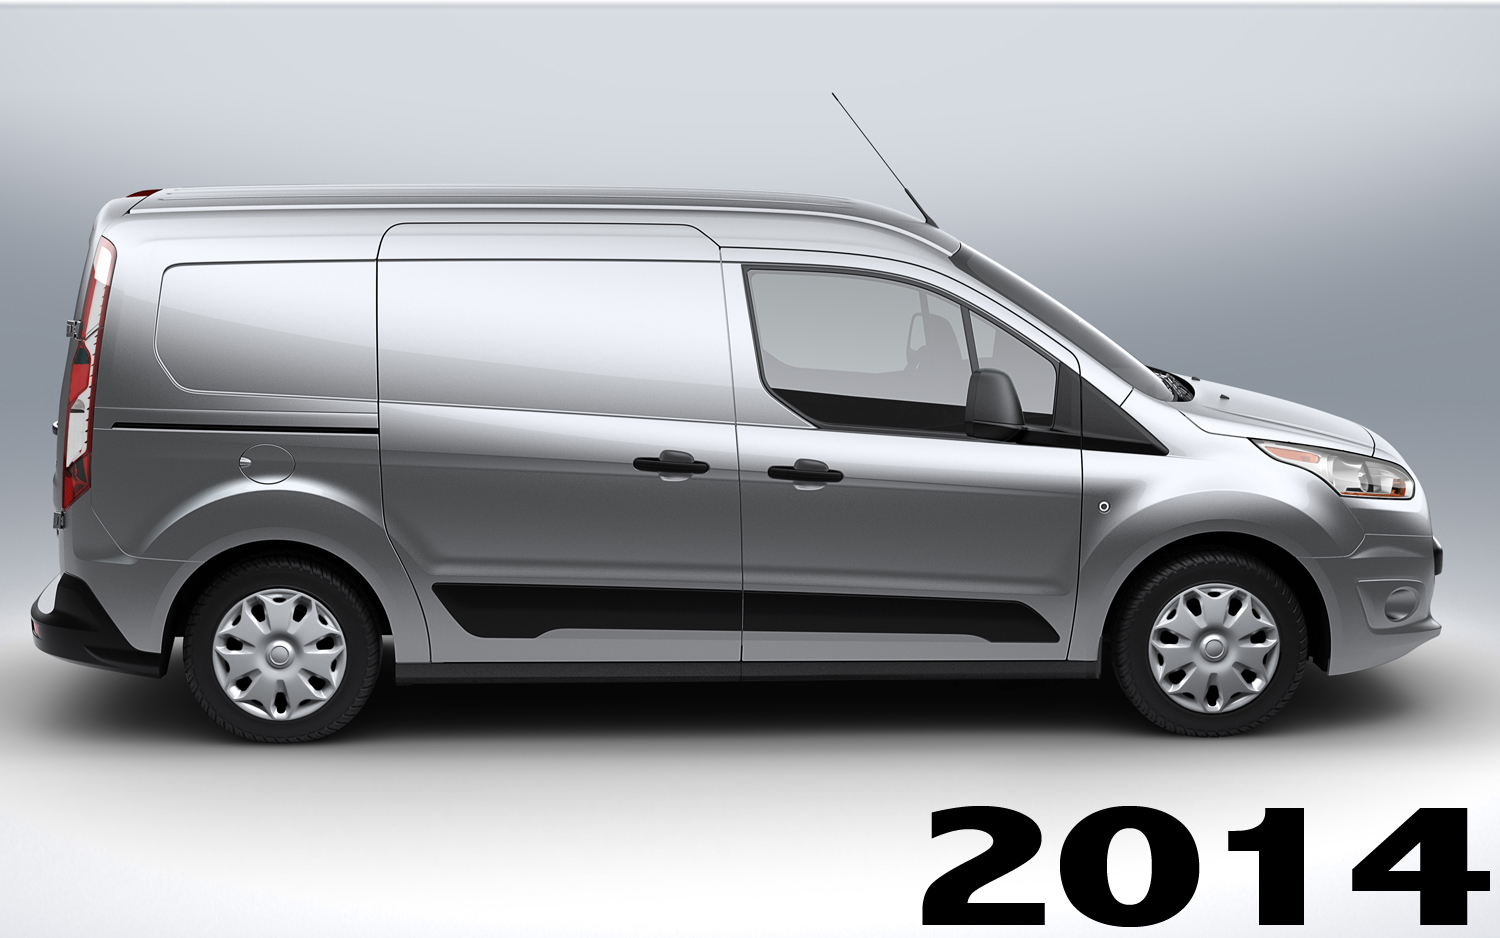 ford 2014 ford transit connect 2014 ford transit connect image 17. Cars Review. Best American Auto & Cars Review